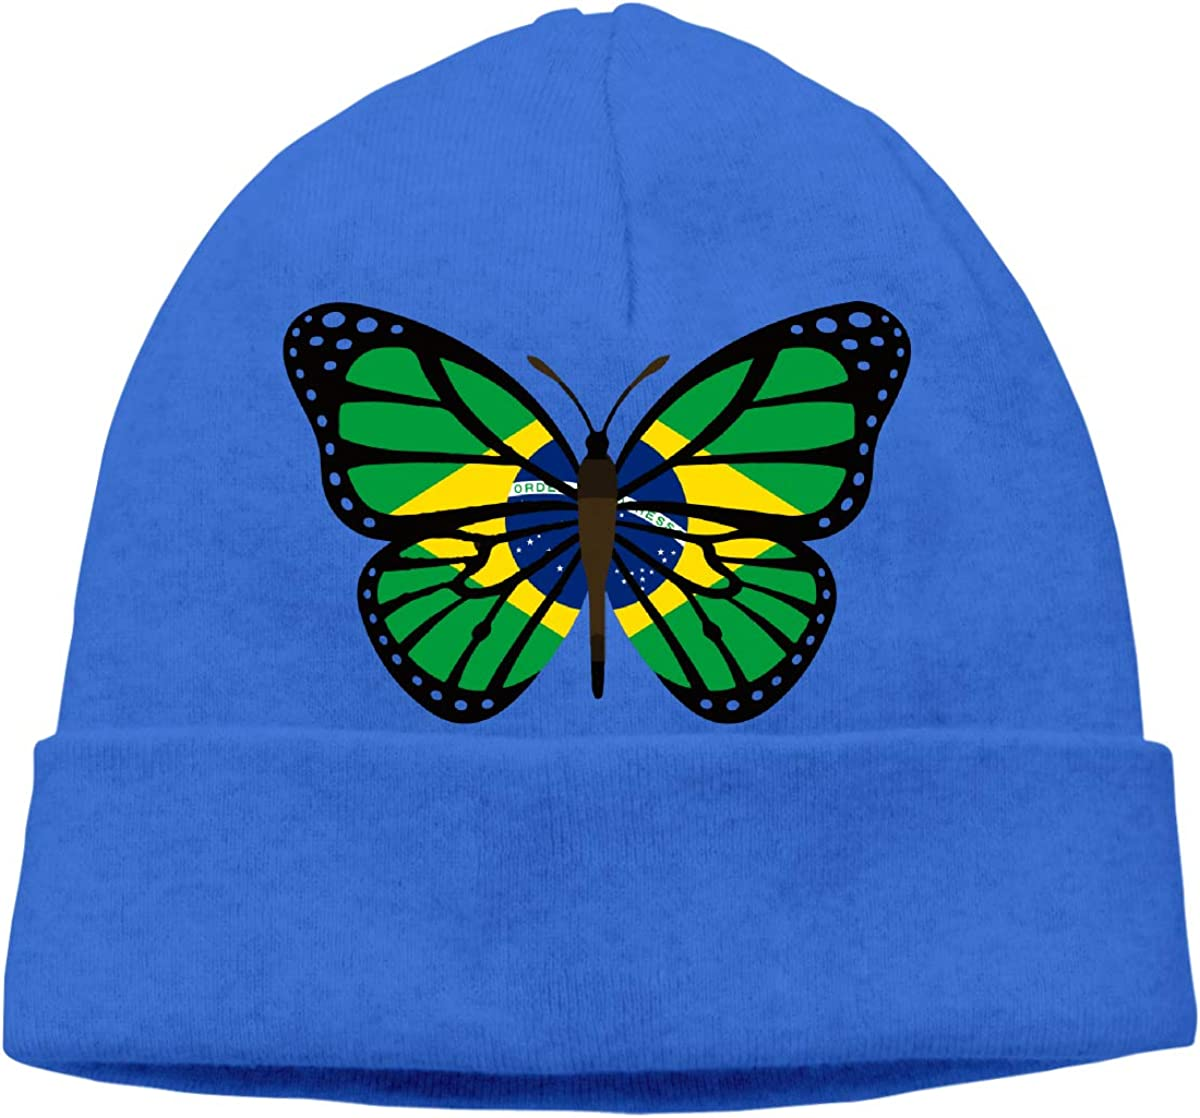 BF5Y3z/&MA ButterFlag Brazil Flag Beanie Hat for Men Women,Soft Hedging Cap Skiing Cap